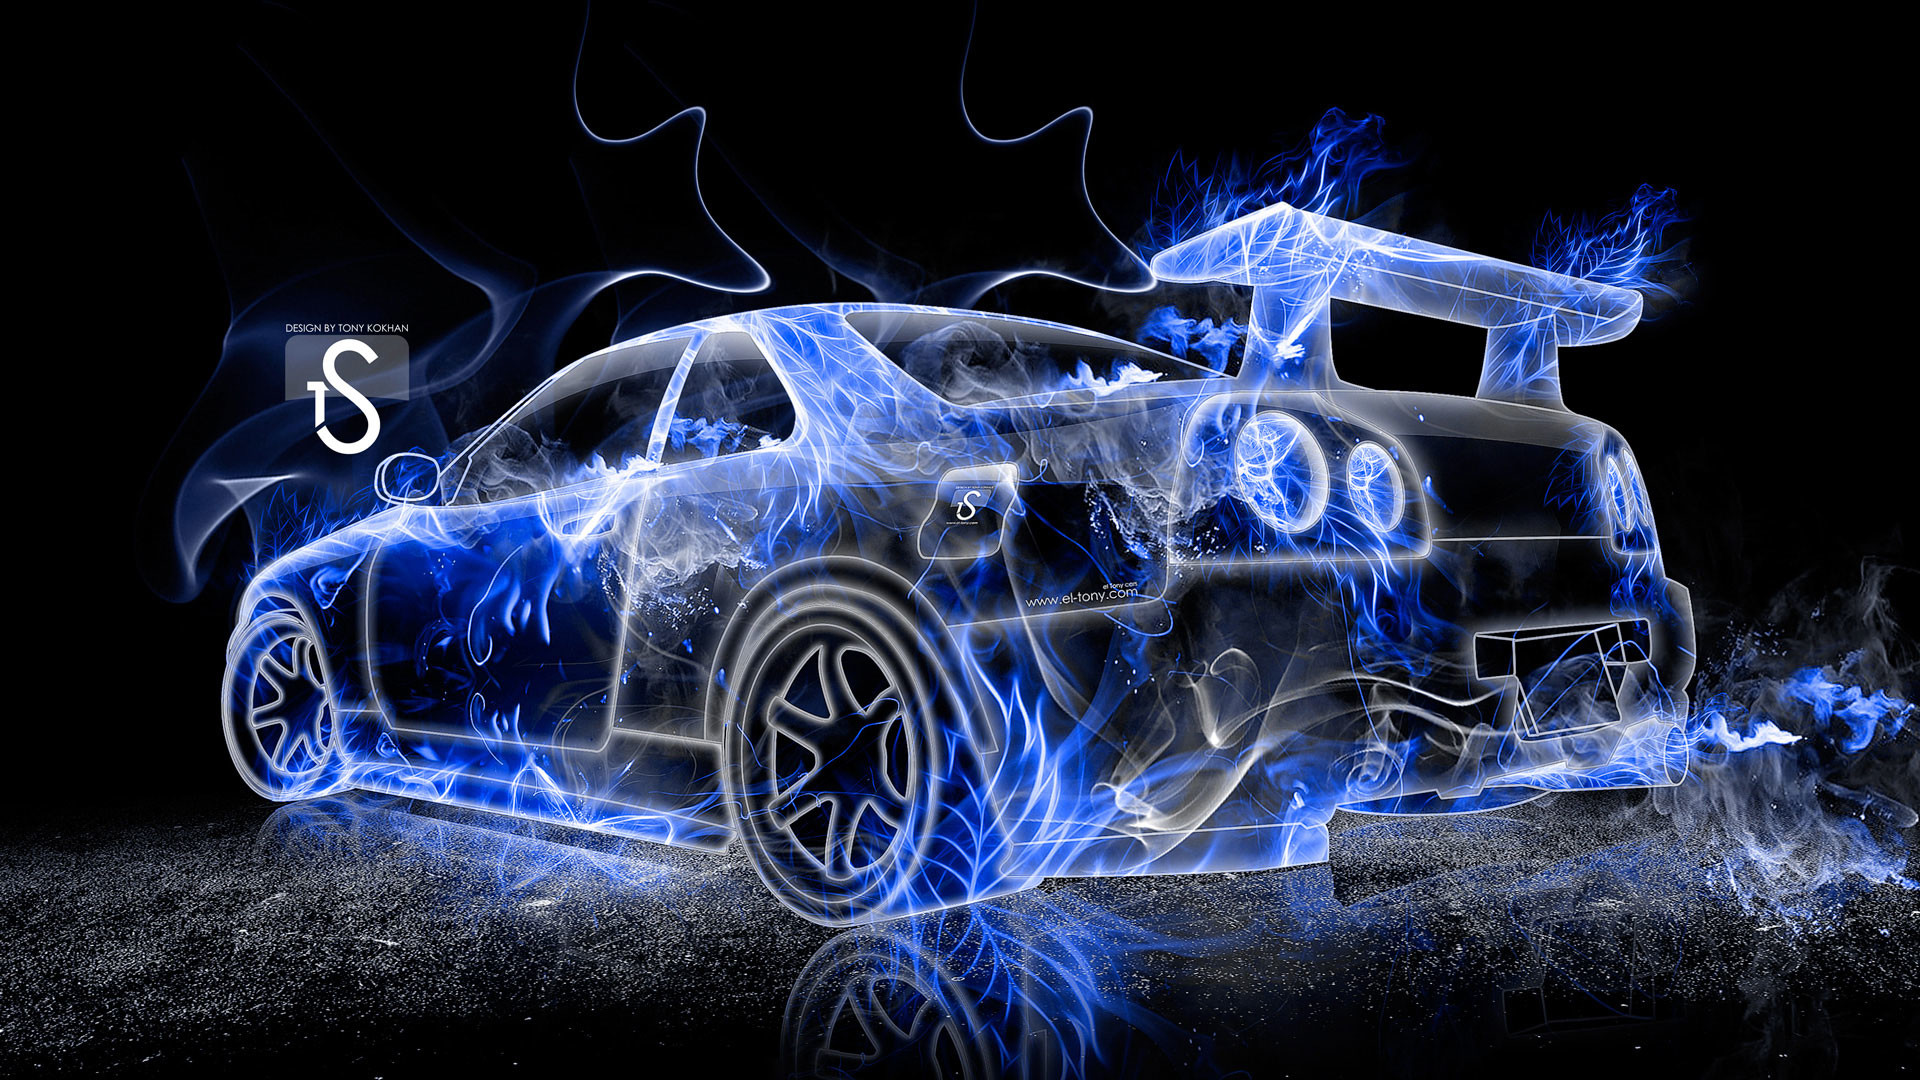 Hd Pics Photos Cars Blue Fire Abstract Desktop Background Wallpaper Wallpapers For You